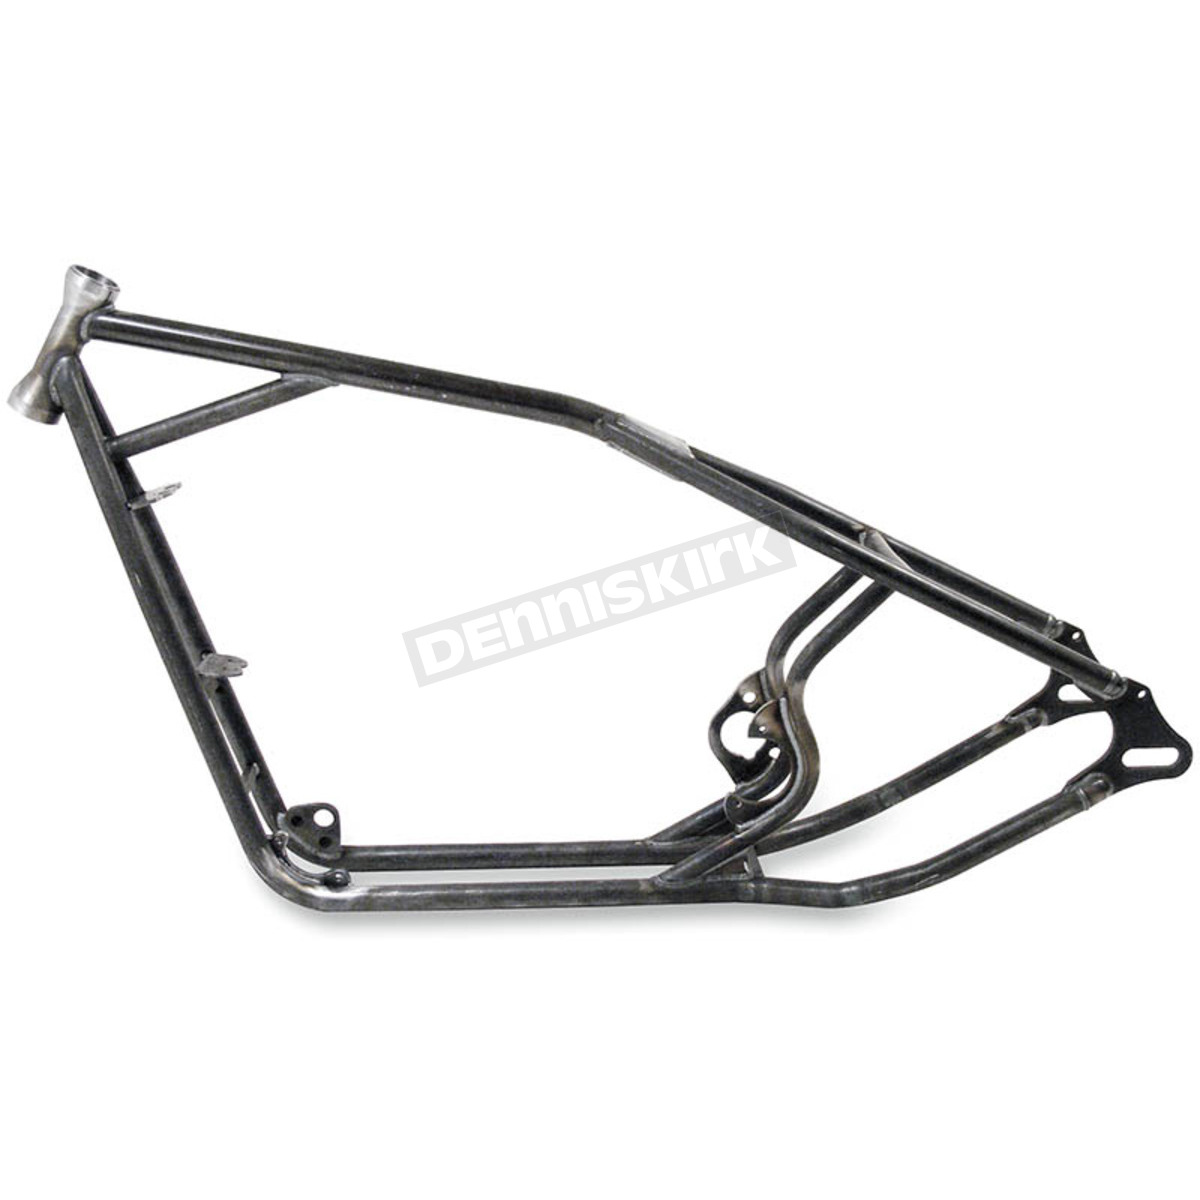 Paughco Rigid Frame for Rubber-Mounted XL - RS120E Harley-Davidson ...